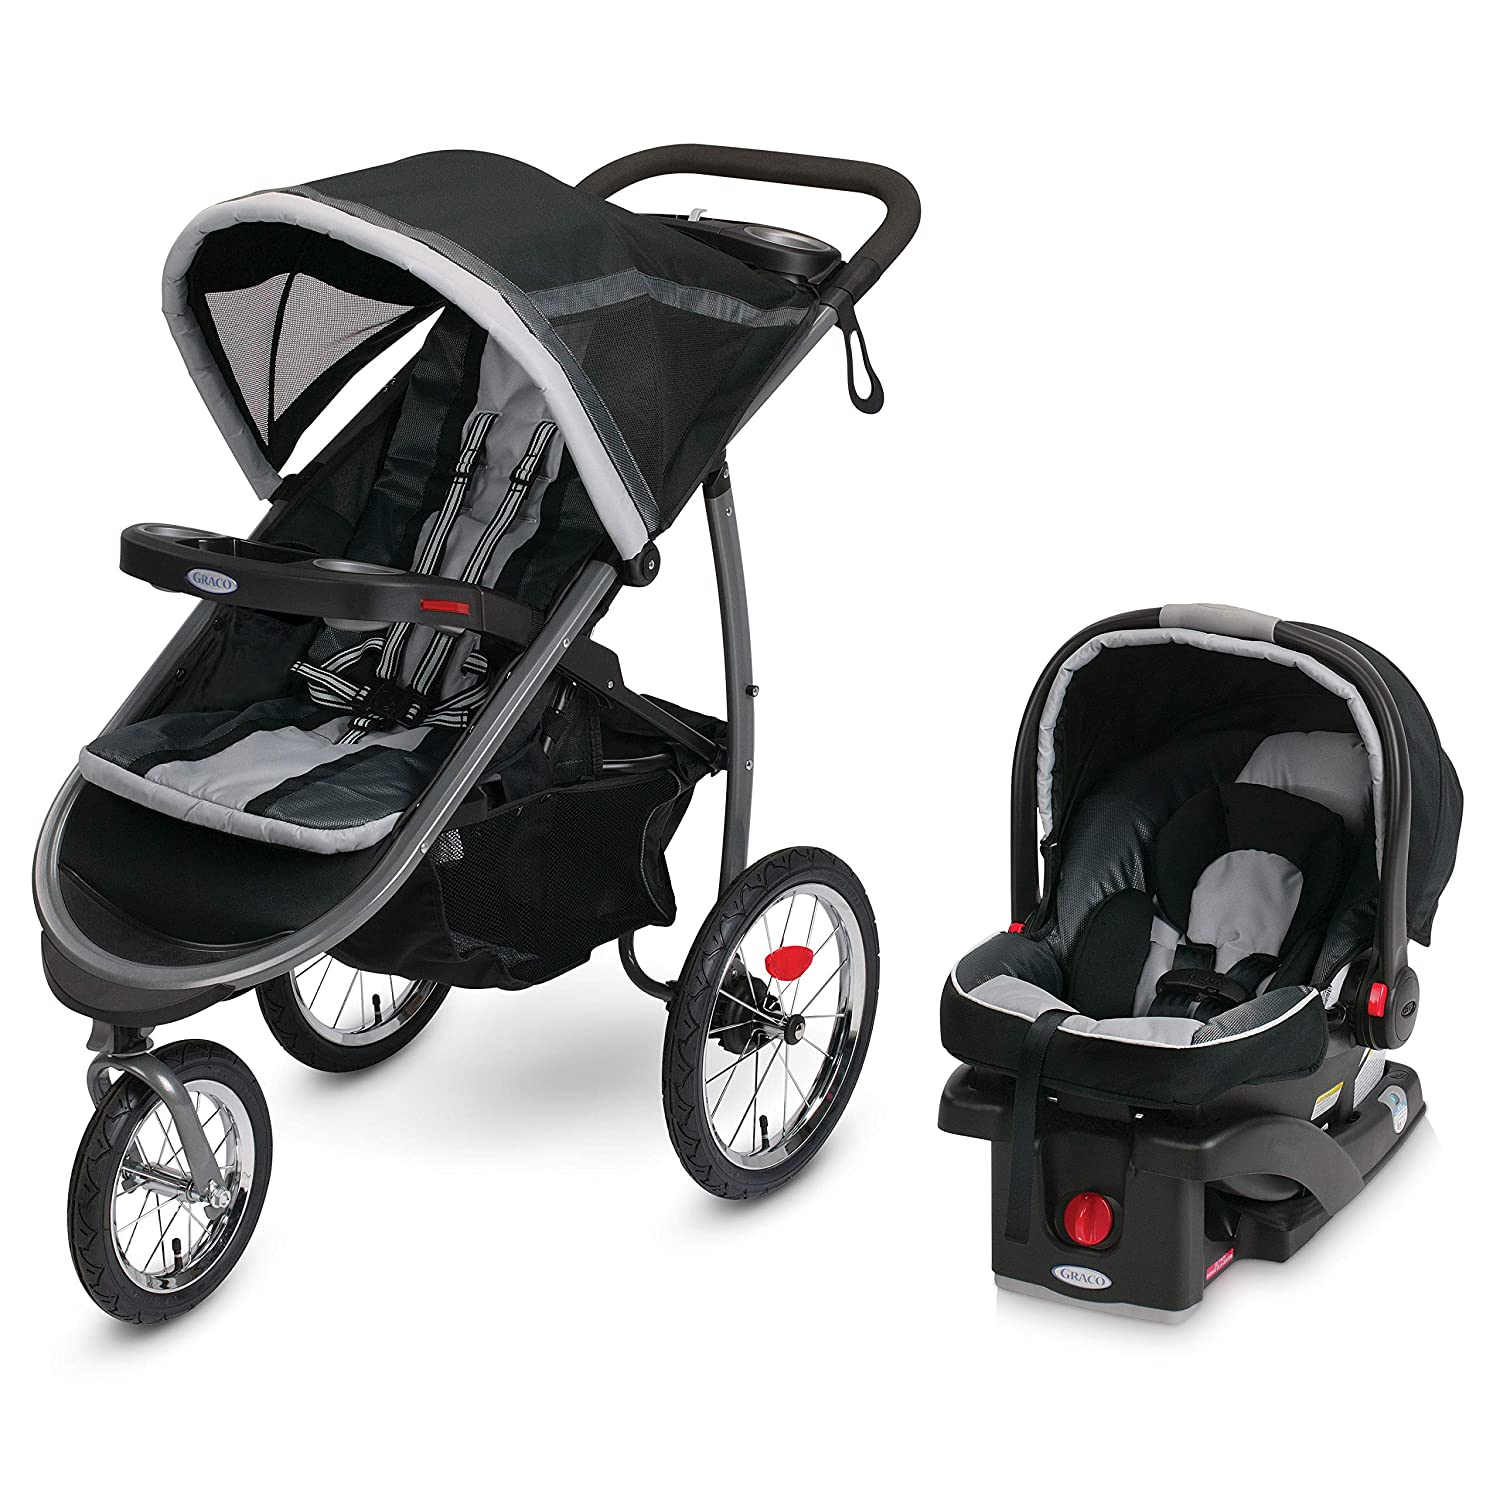 Amazon Com Graco Fastaction Fold Jogger Travel System Includes